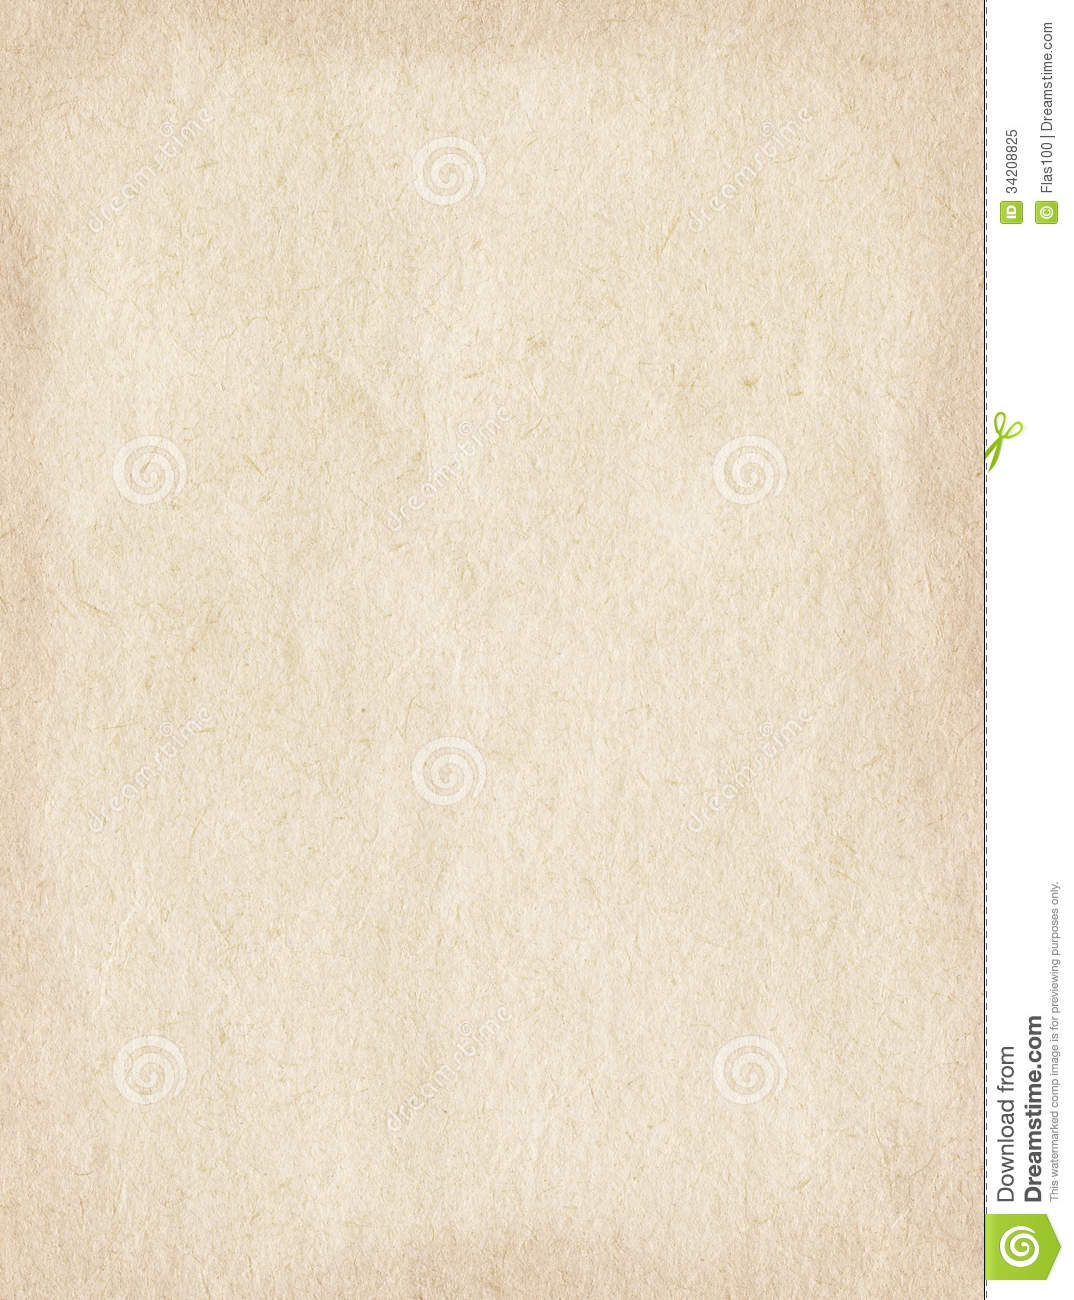 vintage paper texture light background stock image